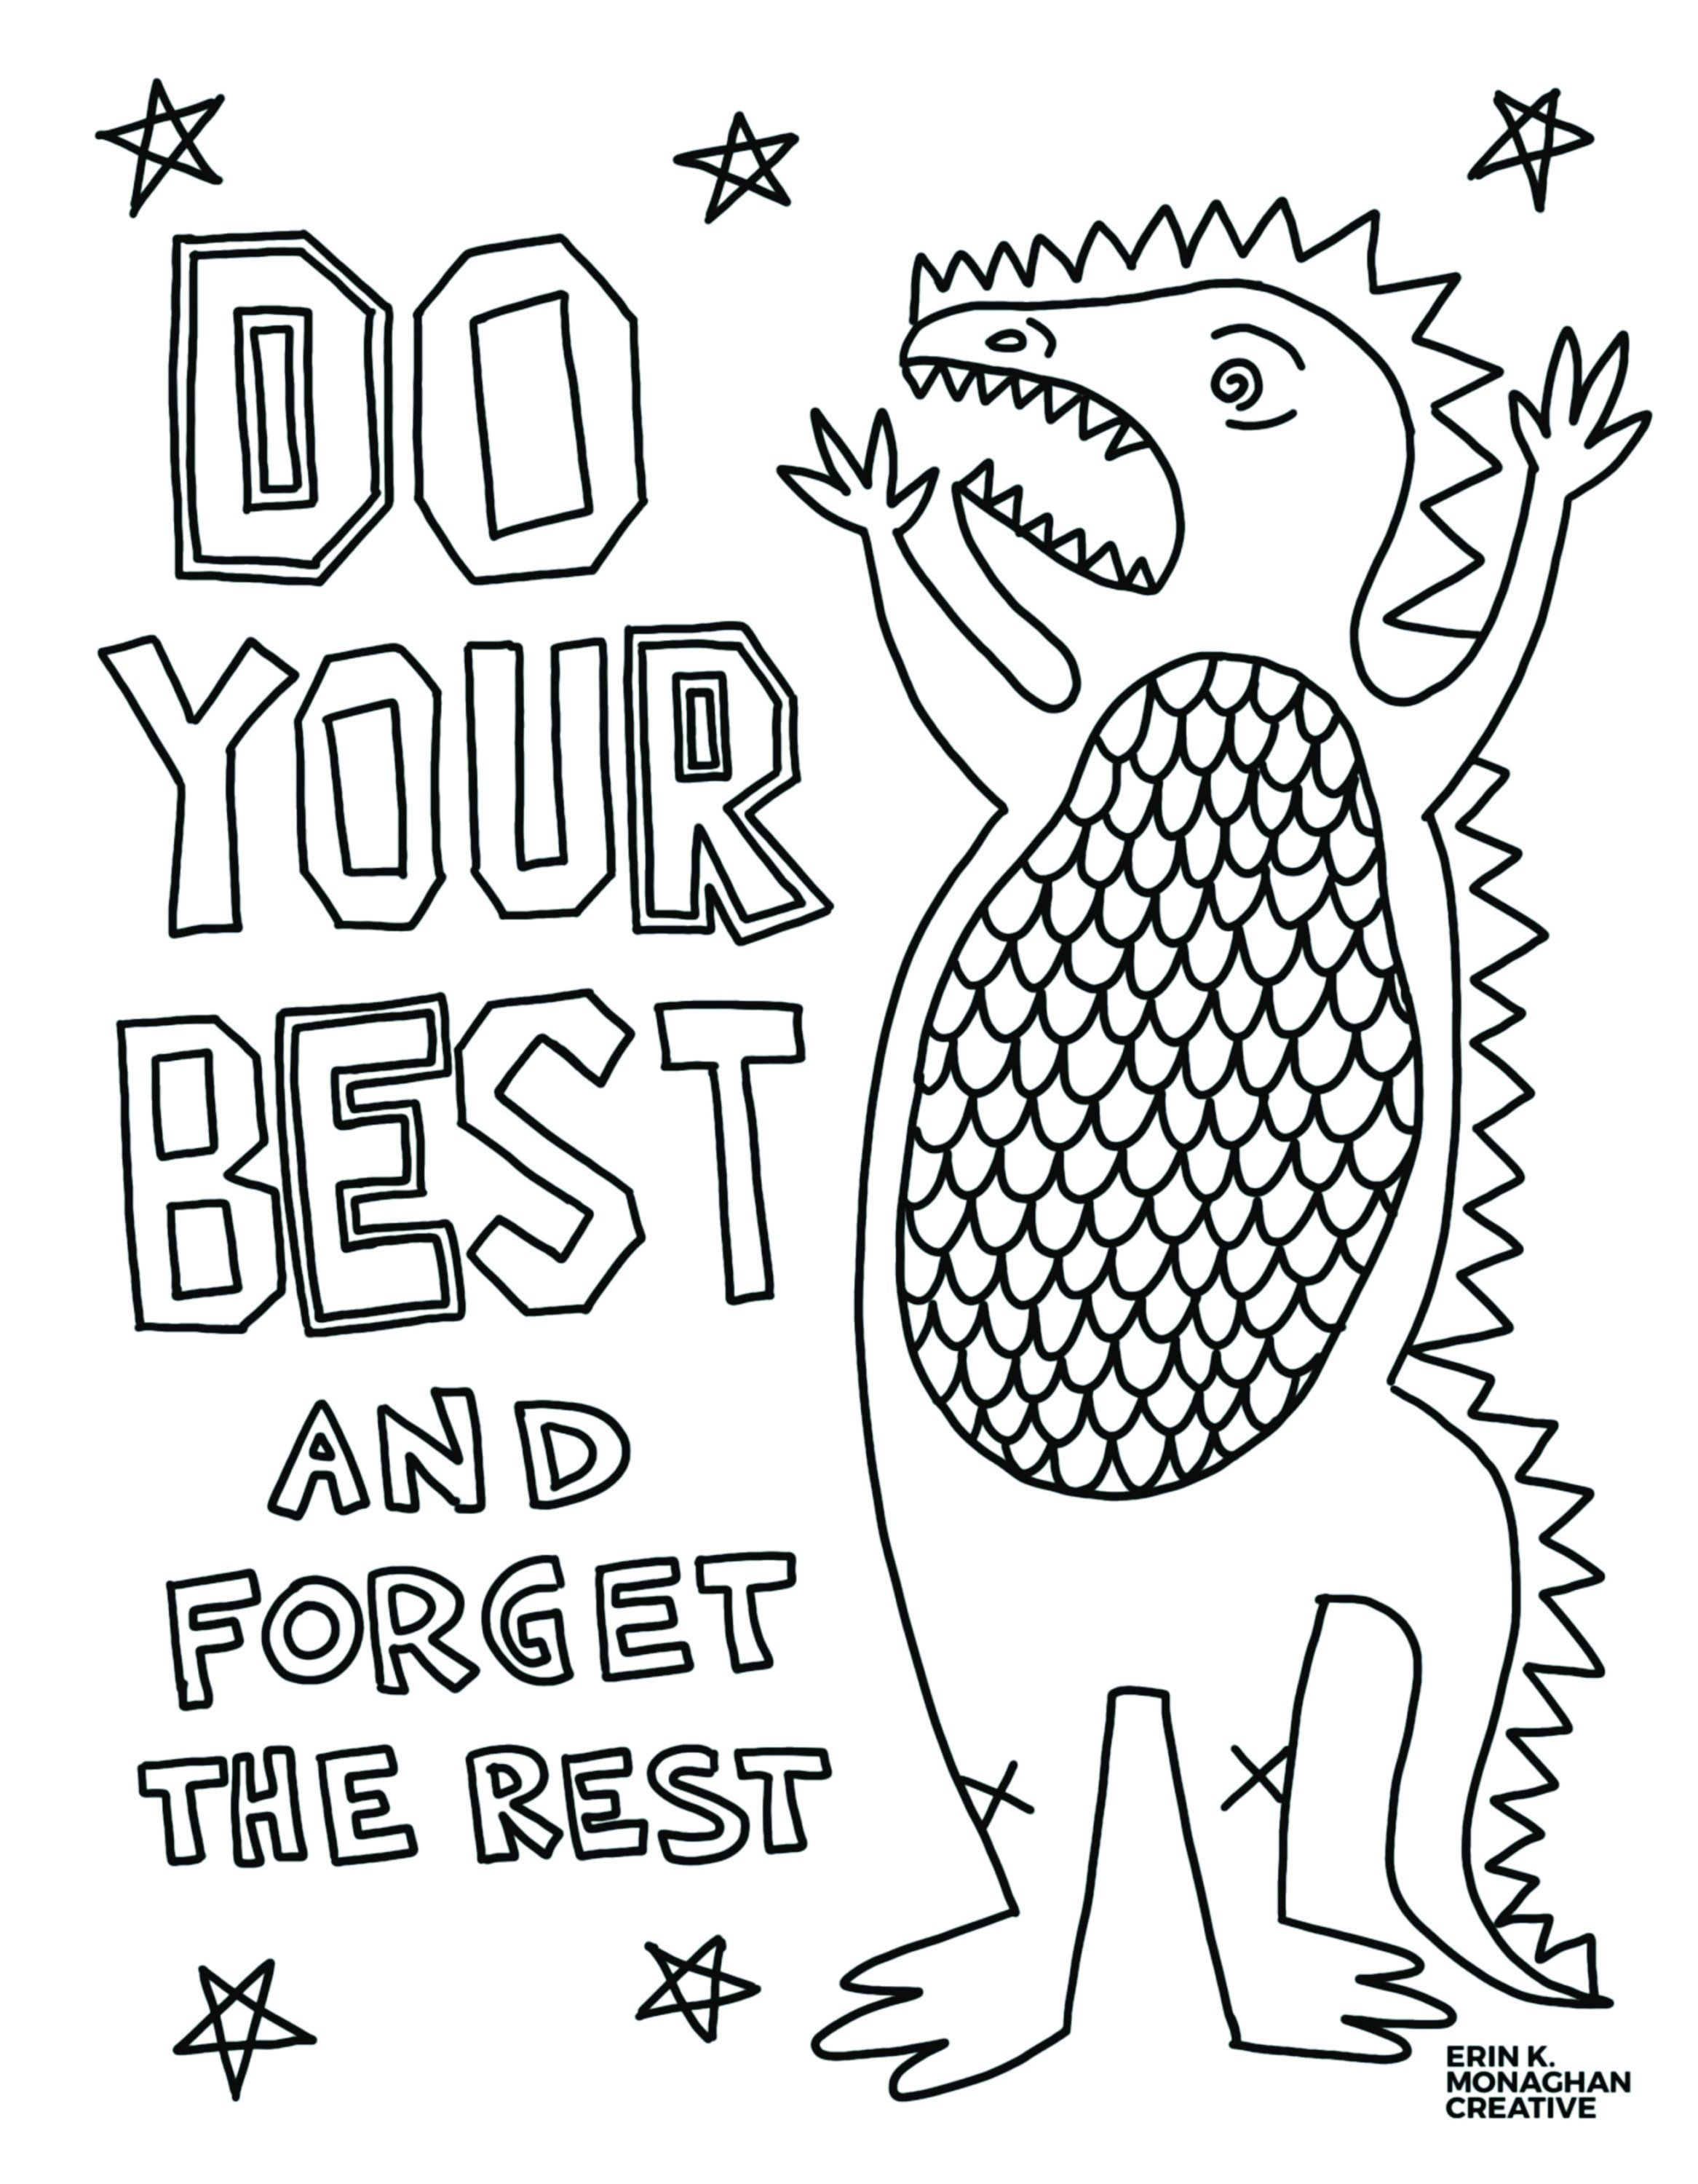 Do Your Best Dinosaur Coloring Sheet Growth Mindset For Kids Etsy Growth Mindset For Kids Dinosaur Coloring Sheets Dinosaur Coloring